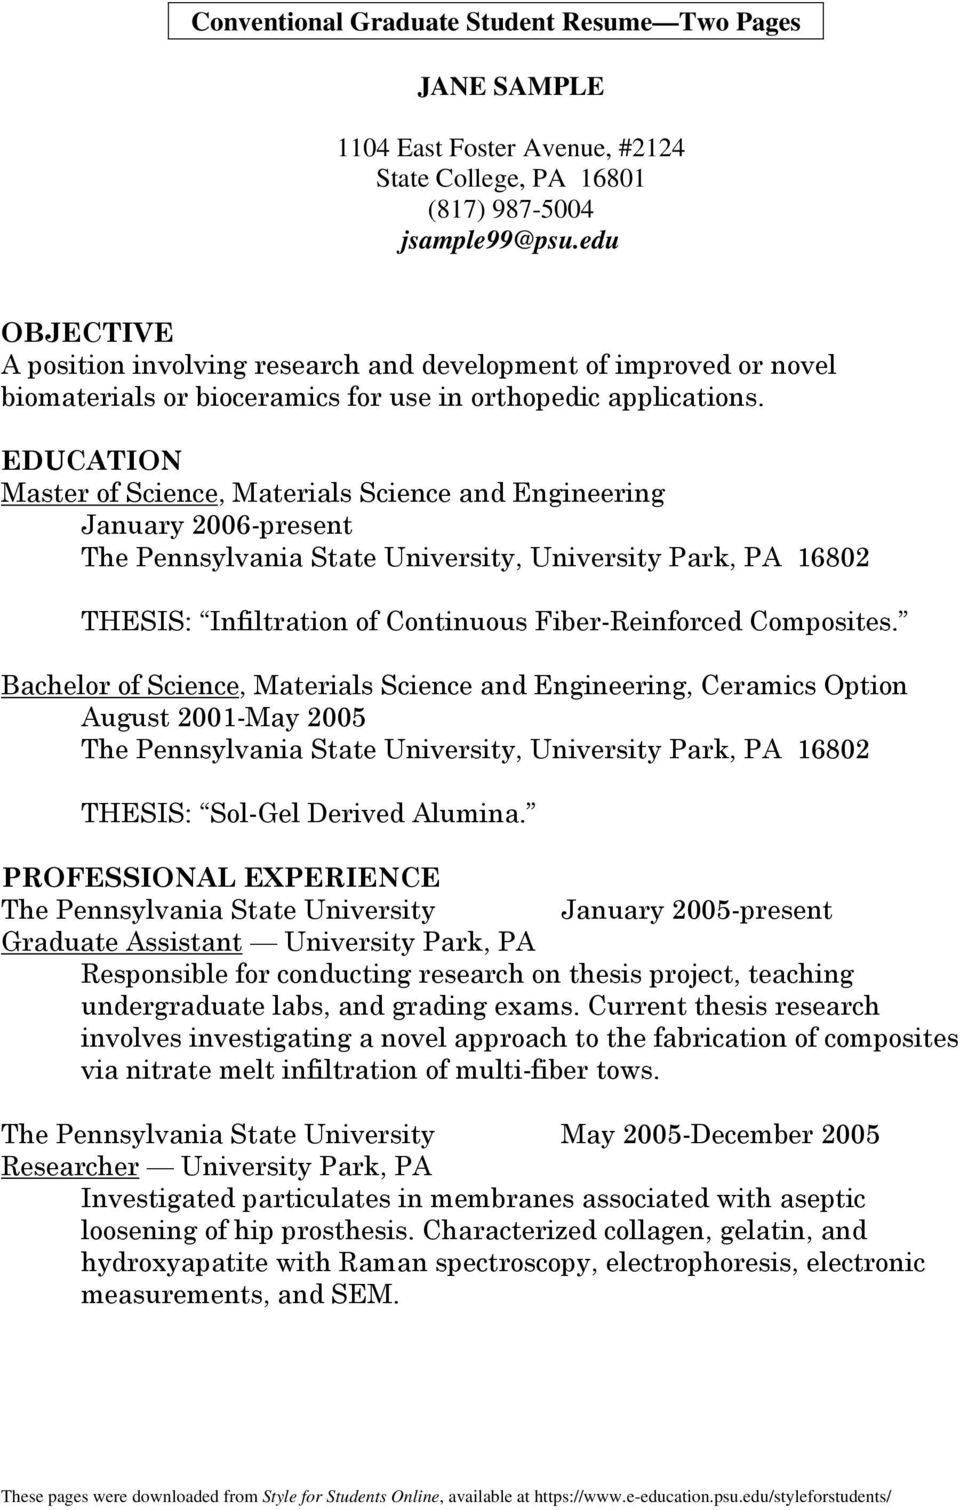 EDUCATION Master of Science, Materials Science and Engineering January 2006-present The Pennsylvania State University, University Park, PA 16802 THESIS: Infiltration of Continuous Fiber-Reinforced